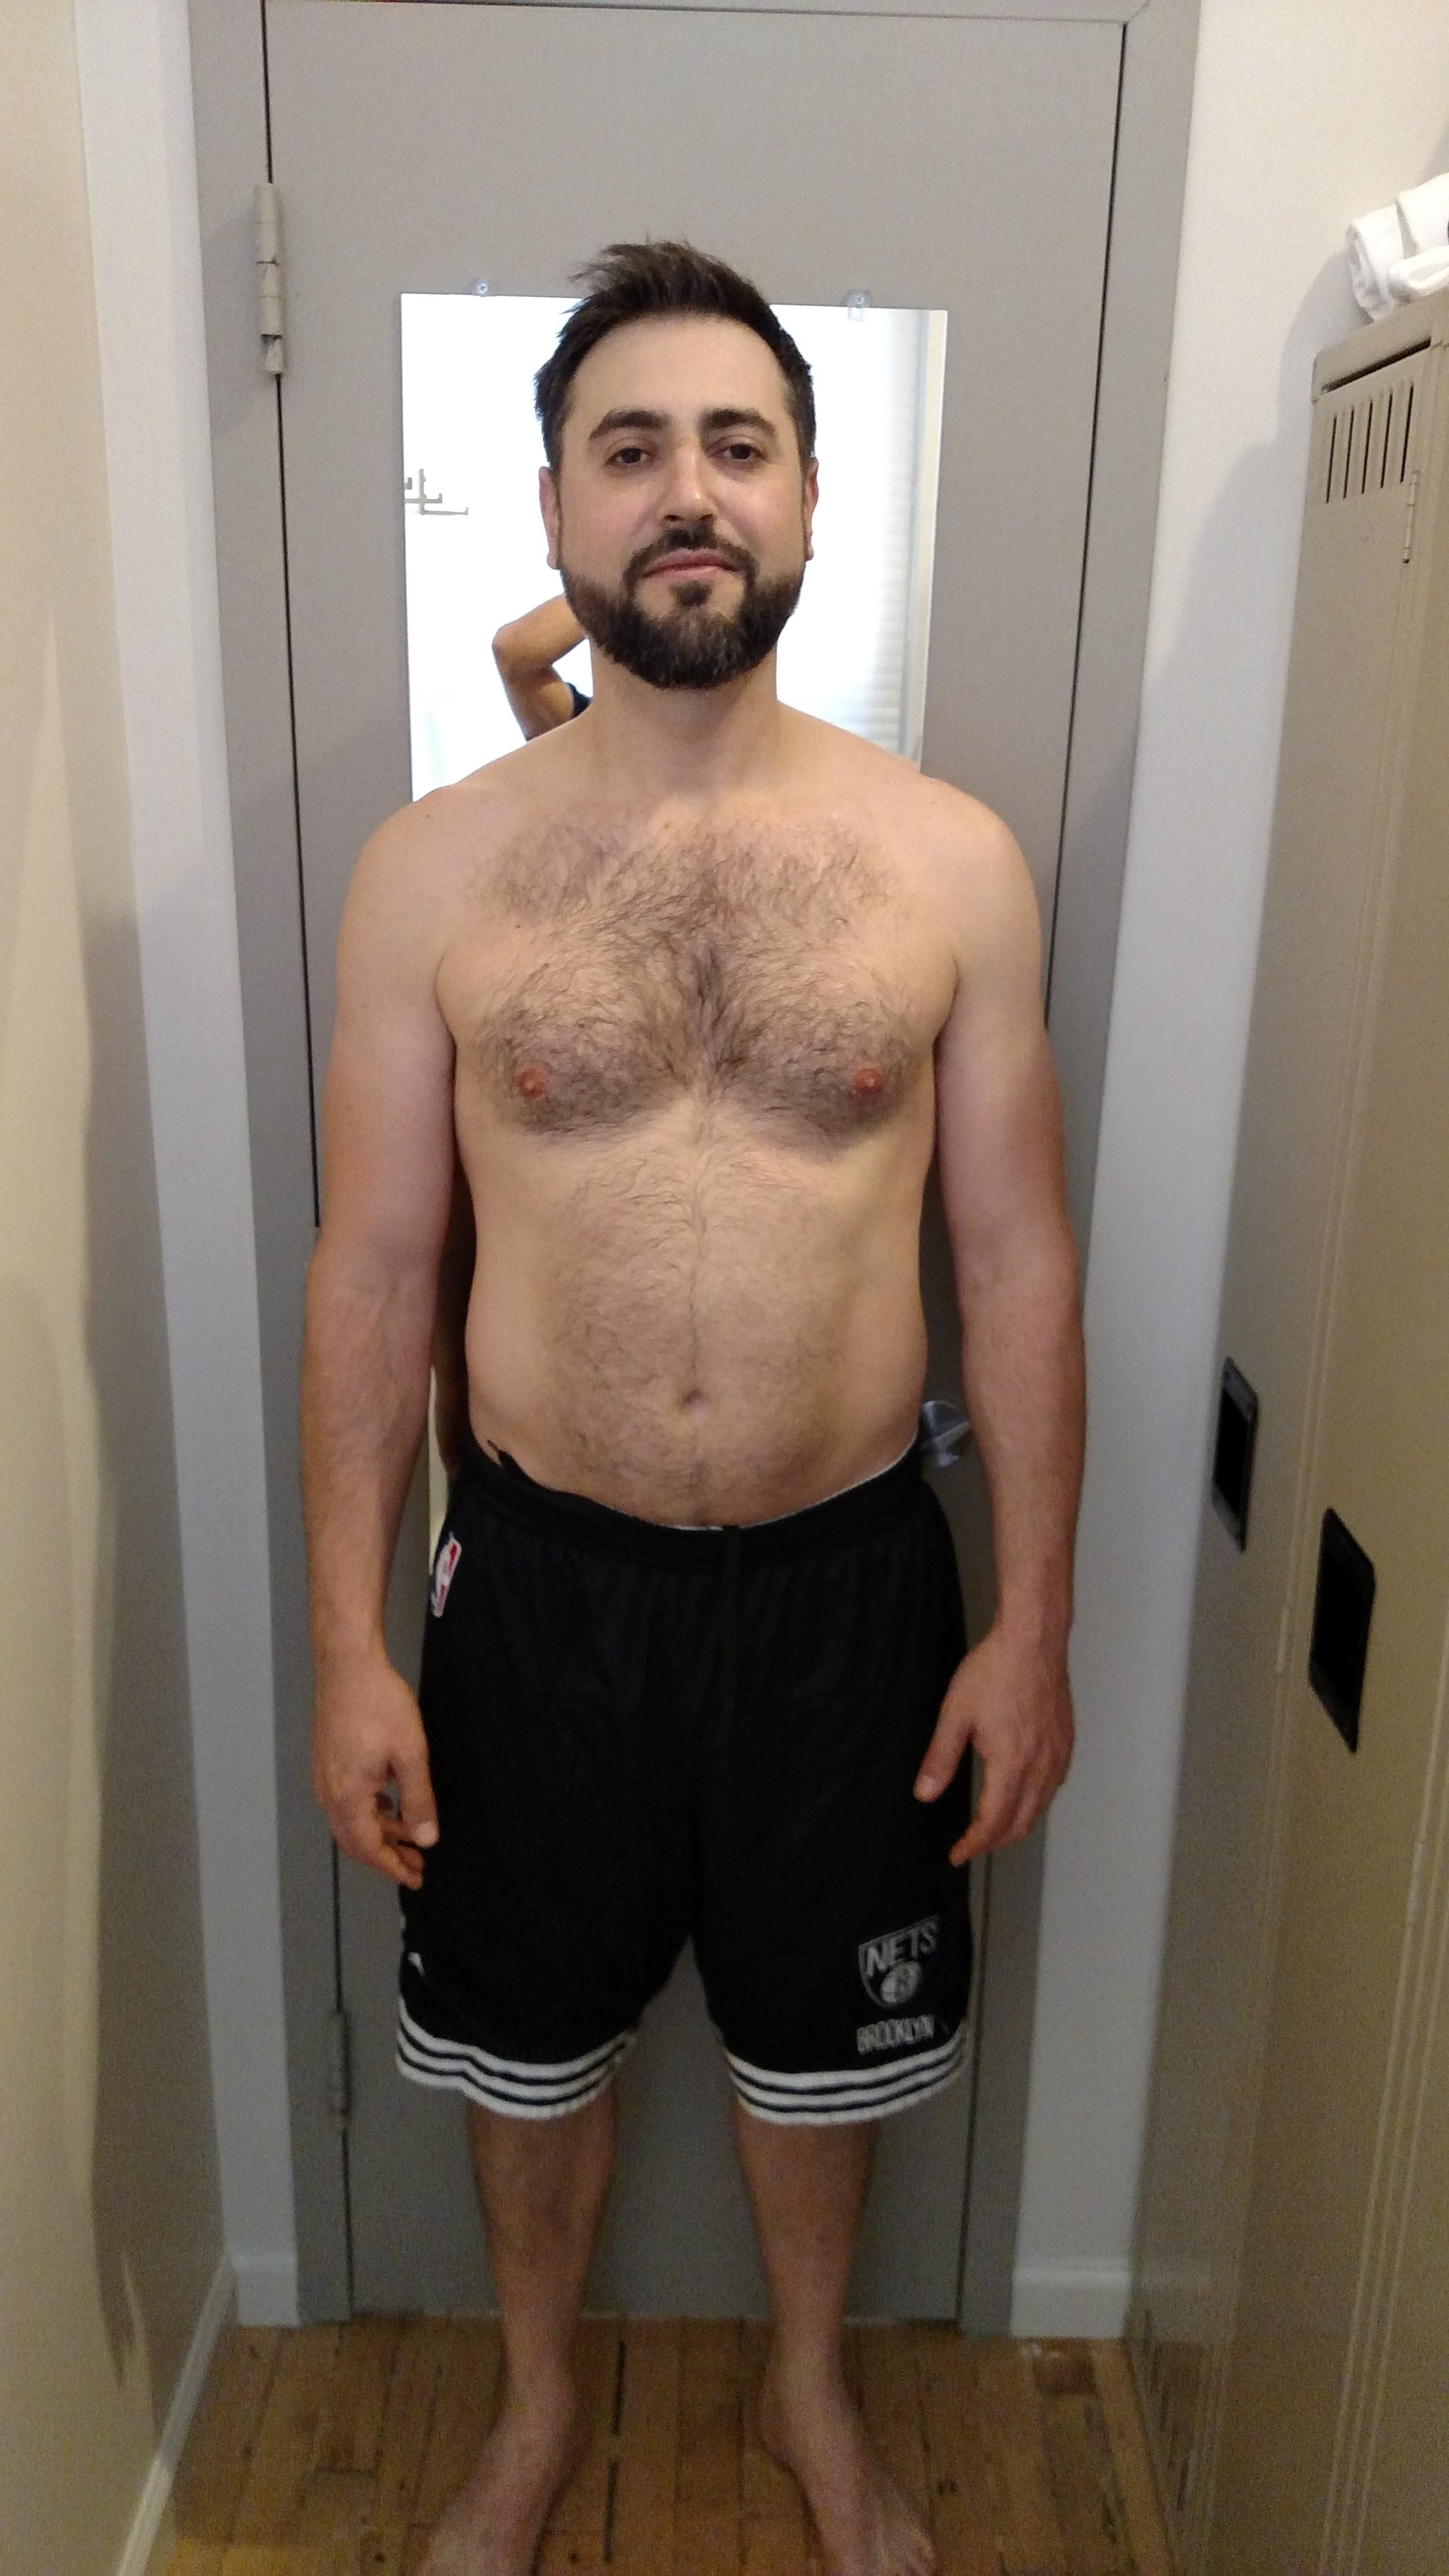 David lost 27lbs and 5.5 inches around his waist in 10 weeks on the Primal Shred Program… without doing a single high intensity workout! And has kept the weight off for 2 years!